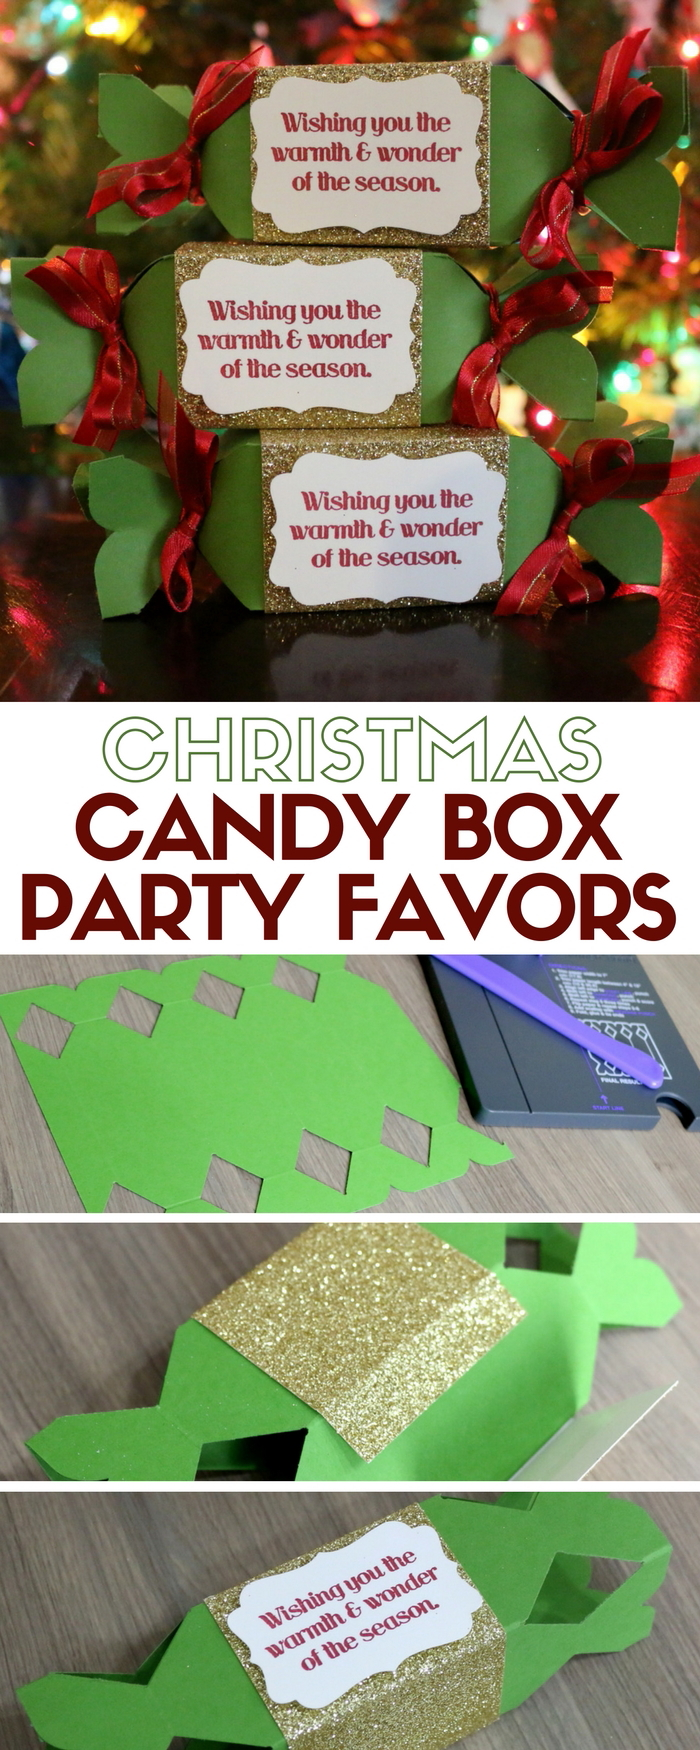 How to make christmas candy box party favors the crafty blog stalker christmas candy box party favor paper crafts candy box punch board handmade gifts jeuxipadfo Choice Image